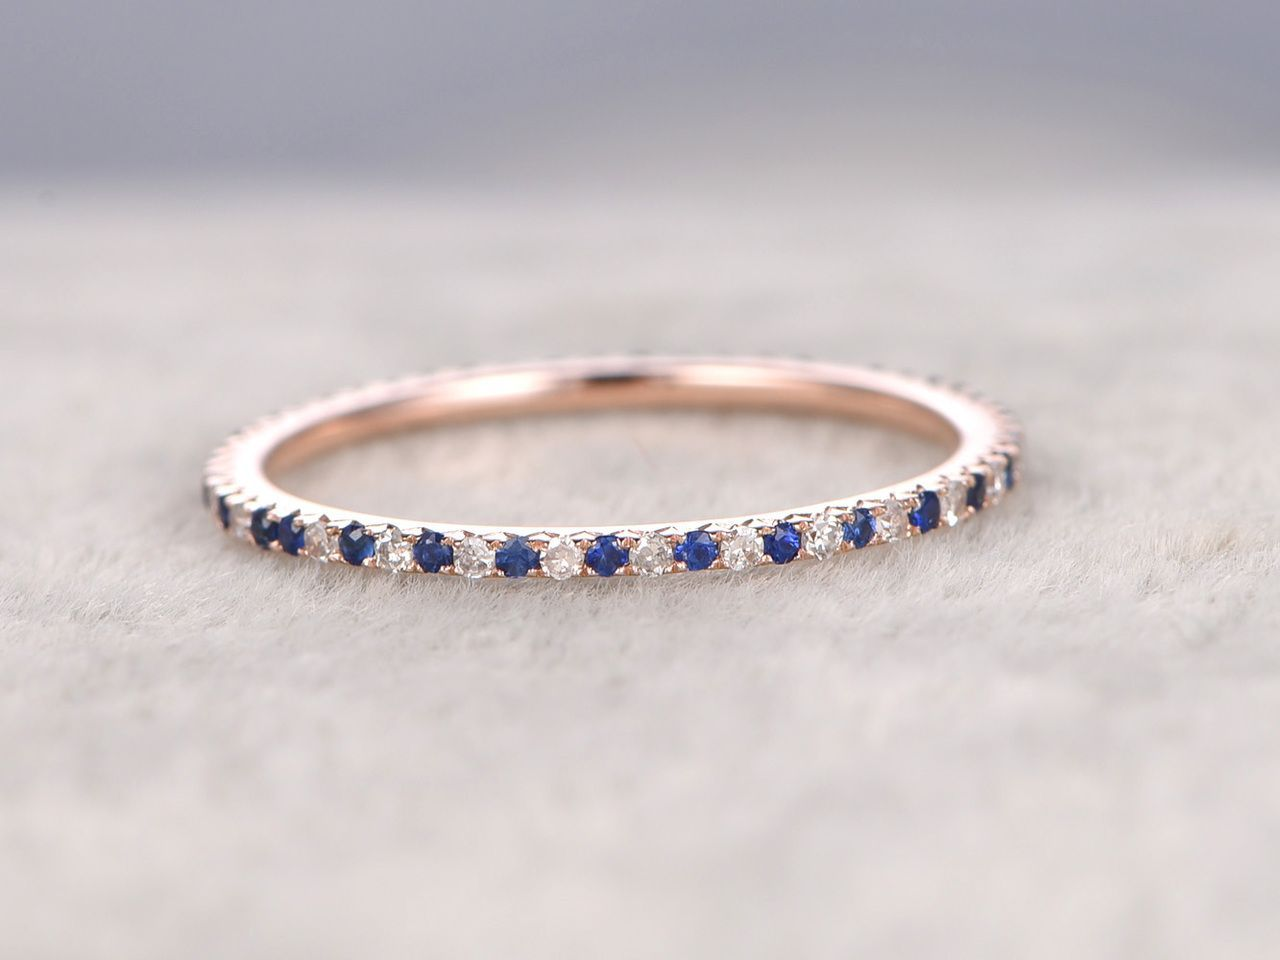 Bbbgem Offers Sapphire Wedding Rings See Our Diamond Wedding Bands In 14k Rose Gold White Gold Or Ye Gold Anniversary Rings Sapphire Band Diamond Wedding Bands